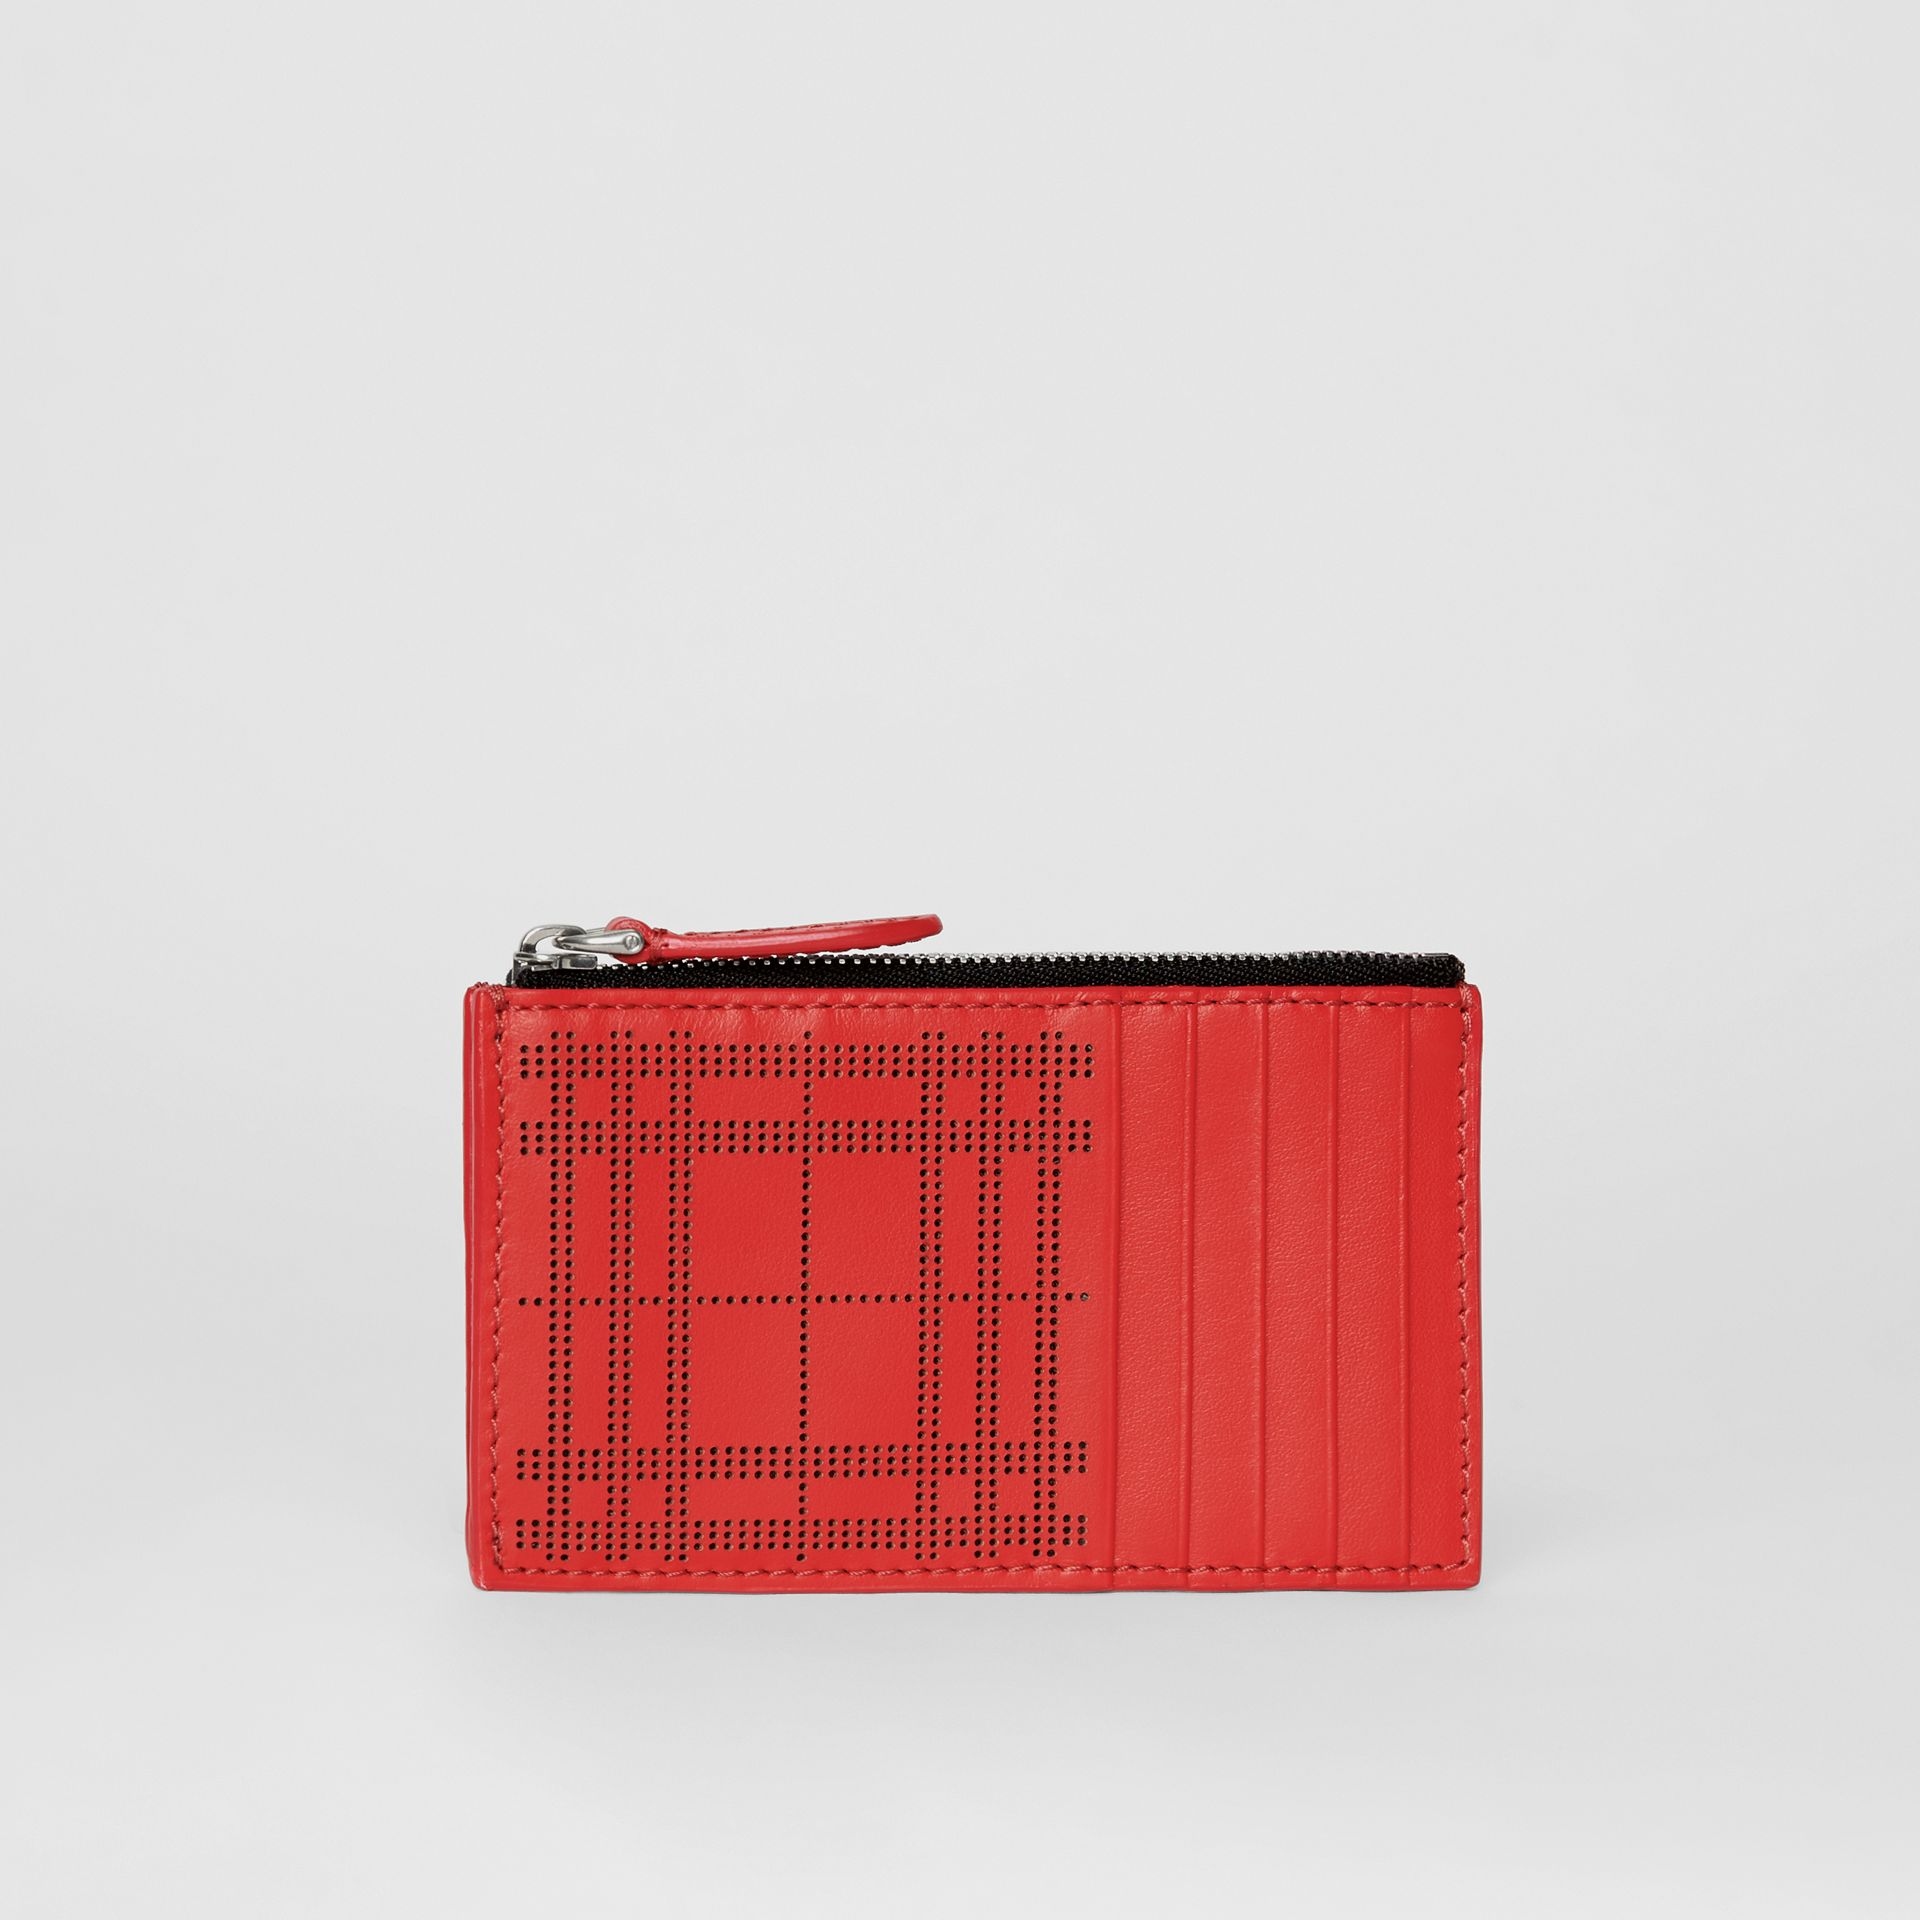 Porte-cartes zippé en cuir à motif check perforé (Rouge Rouille) - Homme | Burberry - photo de la galerie 4